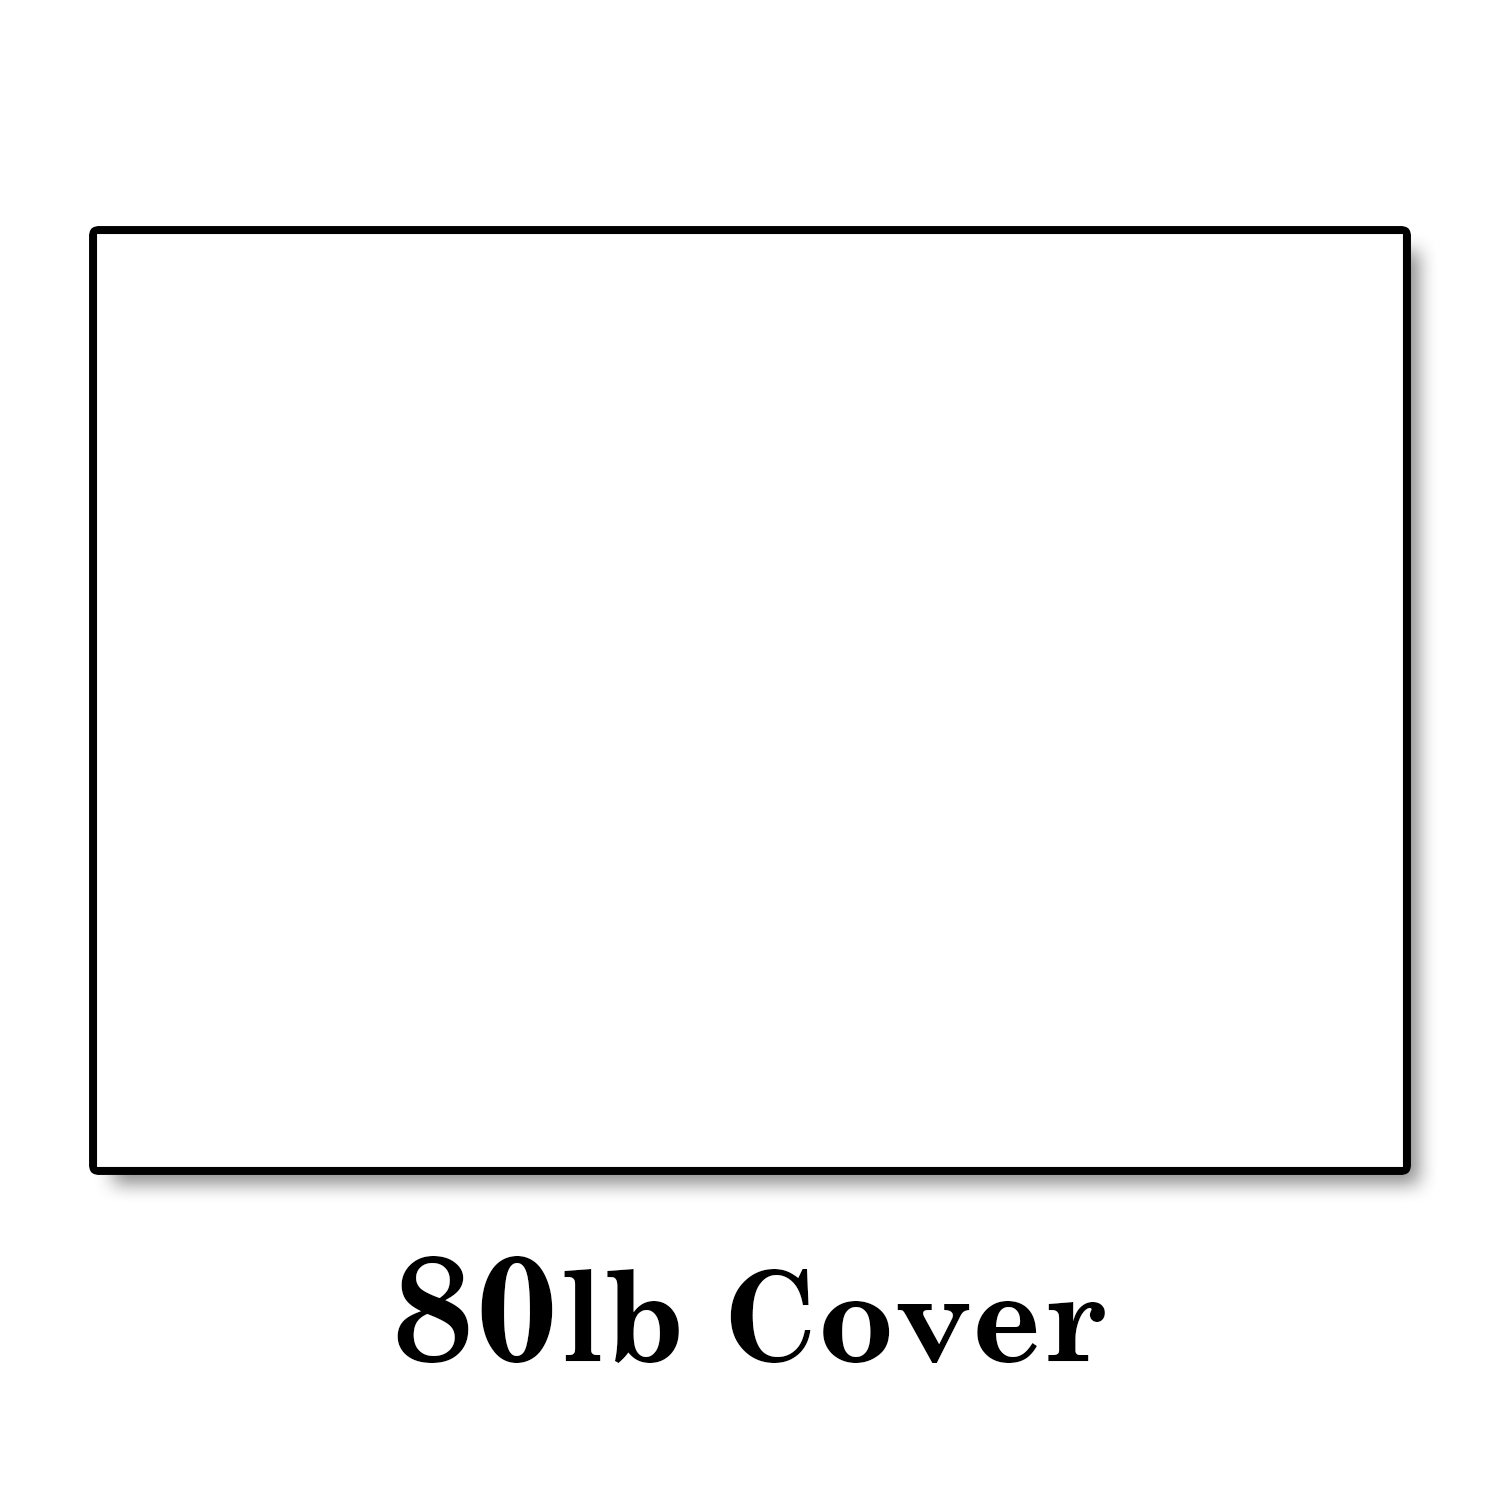 Cheap blank cardstock cards find blank cardstock cards deals on get quotations hamilco bright white cardstock cards 100 pack 4x6 heavyweight cardstock printable blank cards set m4hsunfo